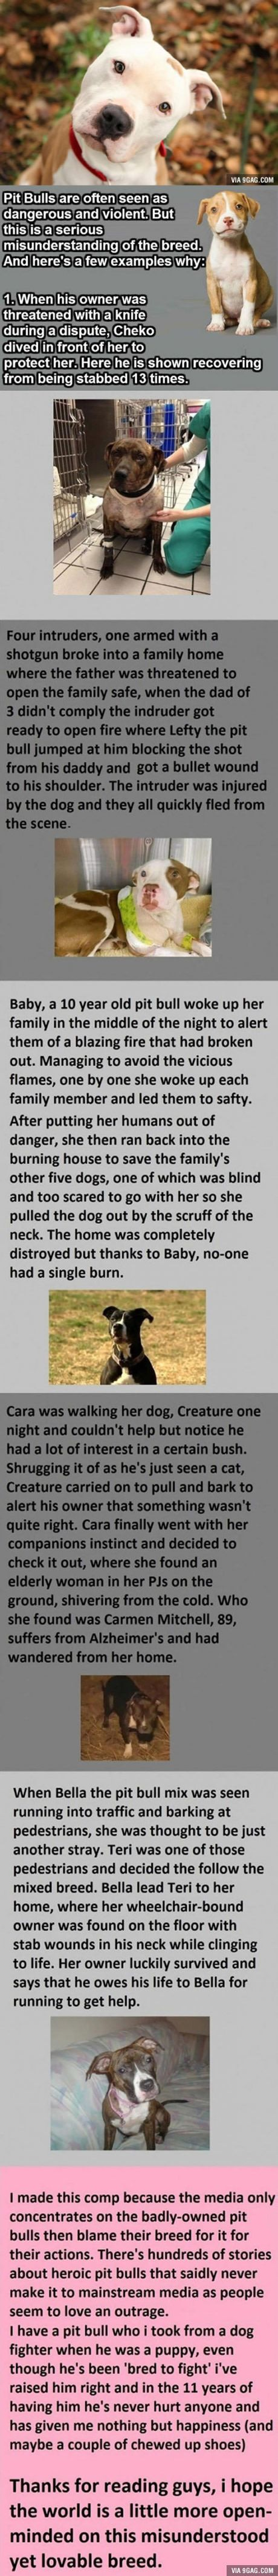 Why Pit Bulls Are Seriously Misunderstood